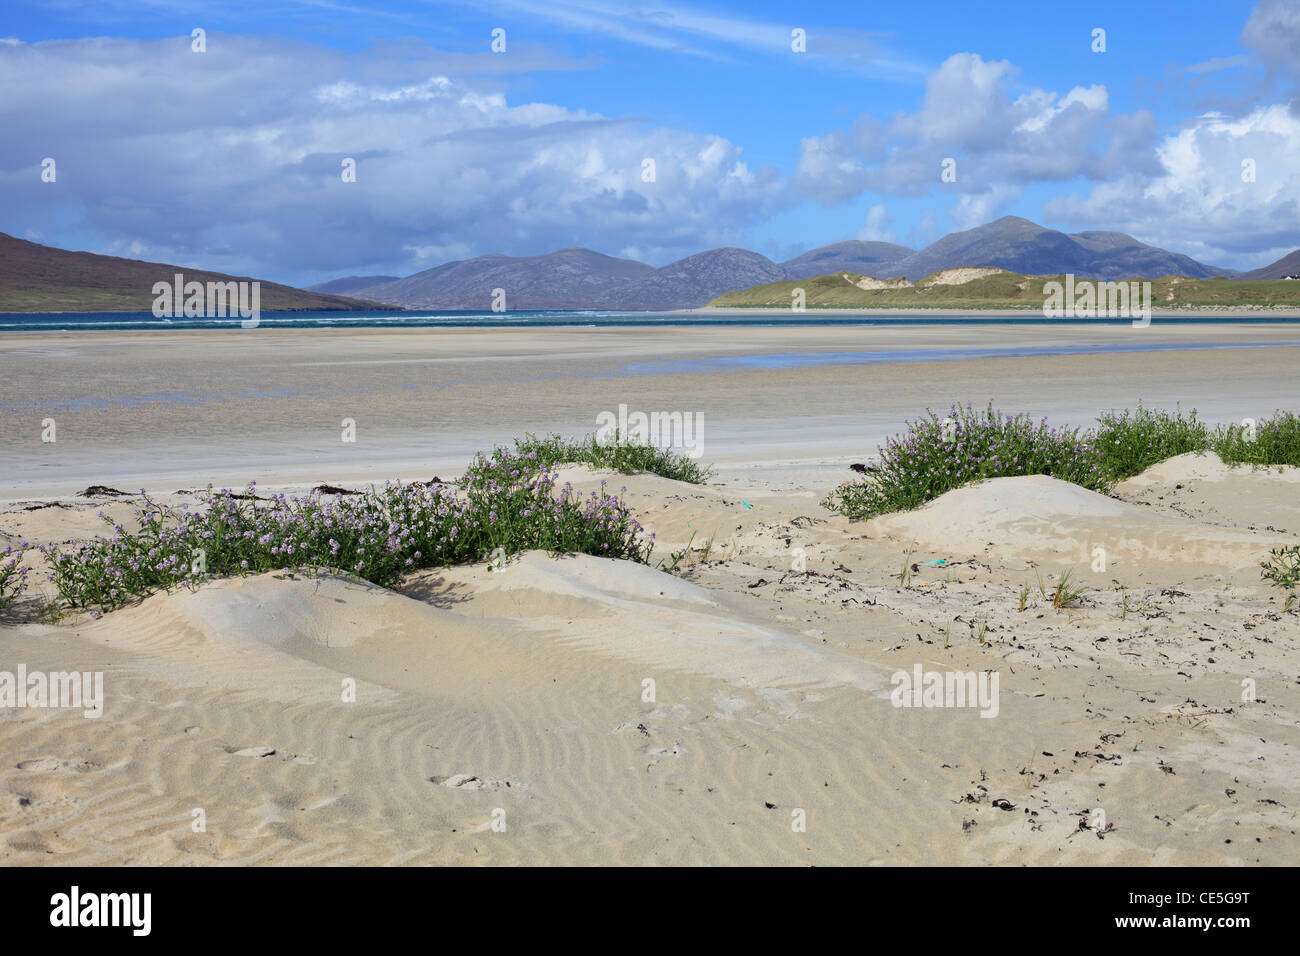 Beach at Seilebost, Isle of Harris, Outer hebrides, Scotland - Stock Image